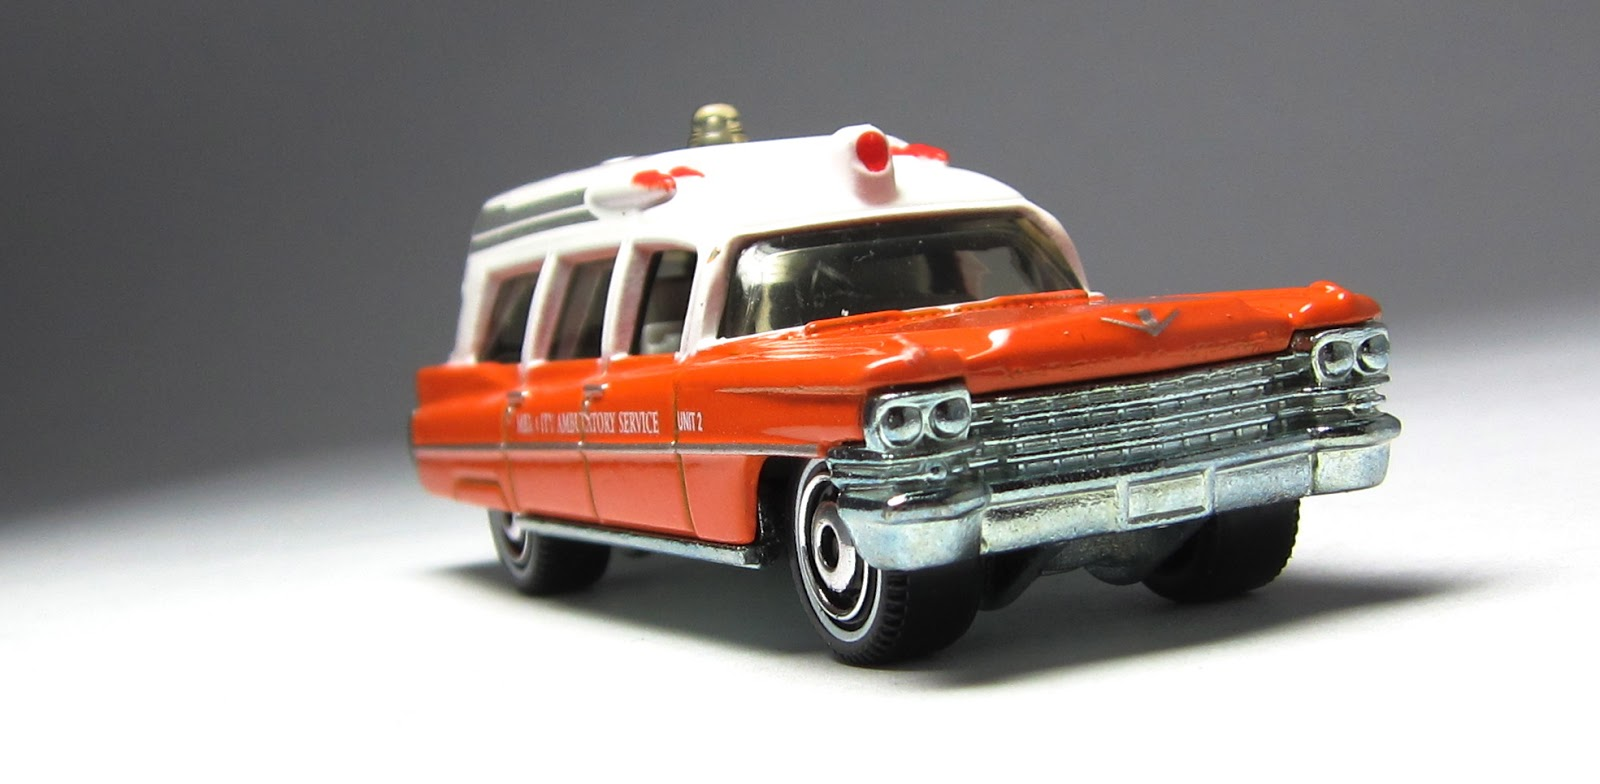 Matchbox Cadillac Ambulance 1963 Cadillac Ambulance